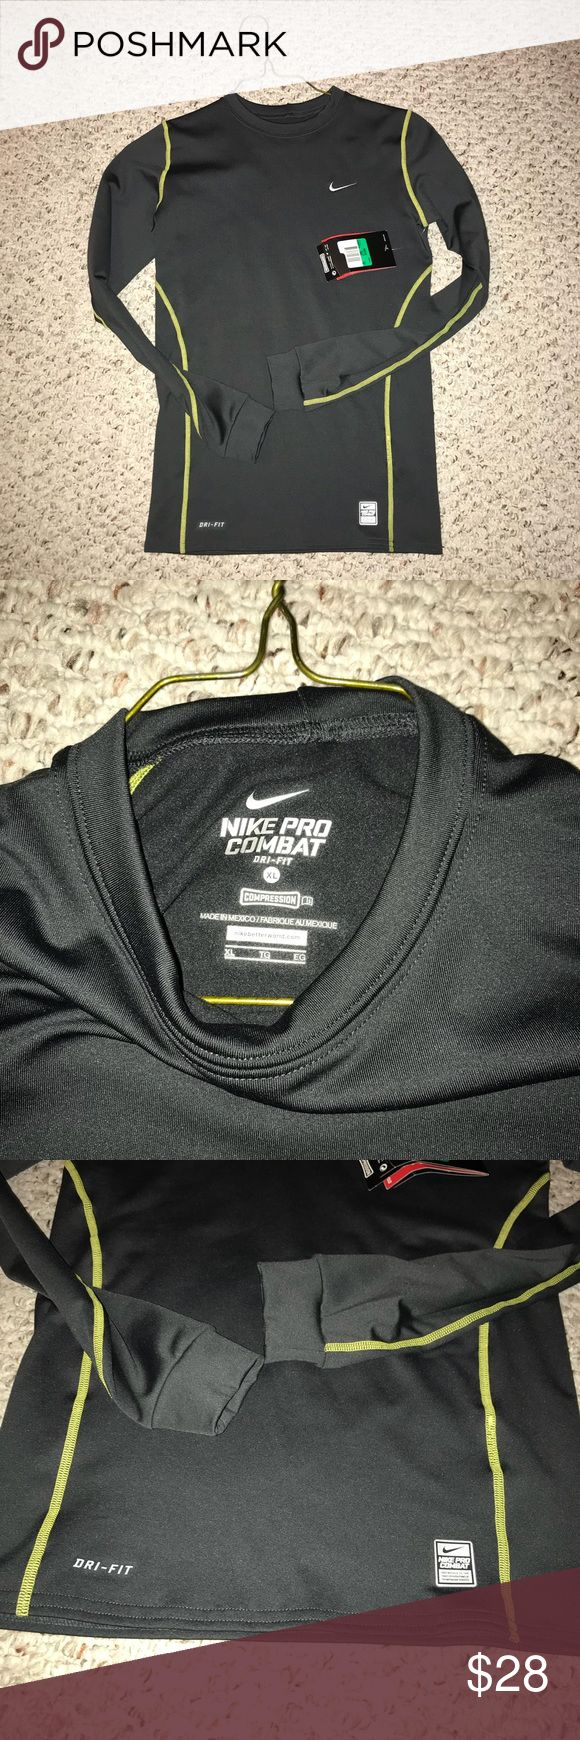 NWT Nike pro combat Long sleeve Tshirt (Boys XL) NWT Nike pro combat Long sleeve Tshirt   Boys XL  Great condition   Not worn before Nike Shirts & Tops Tees - Long Sleeve